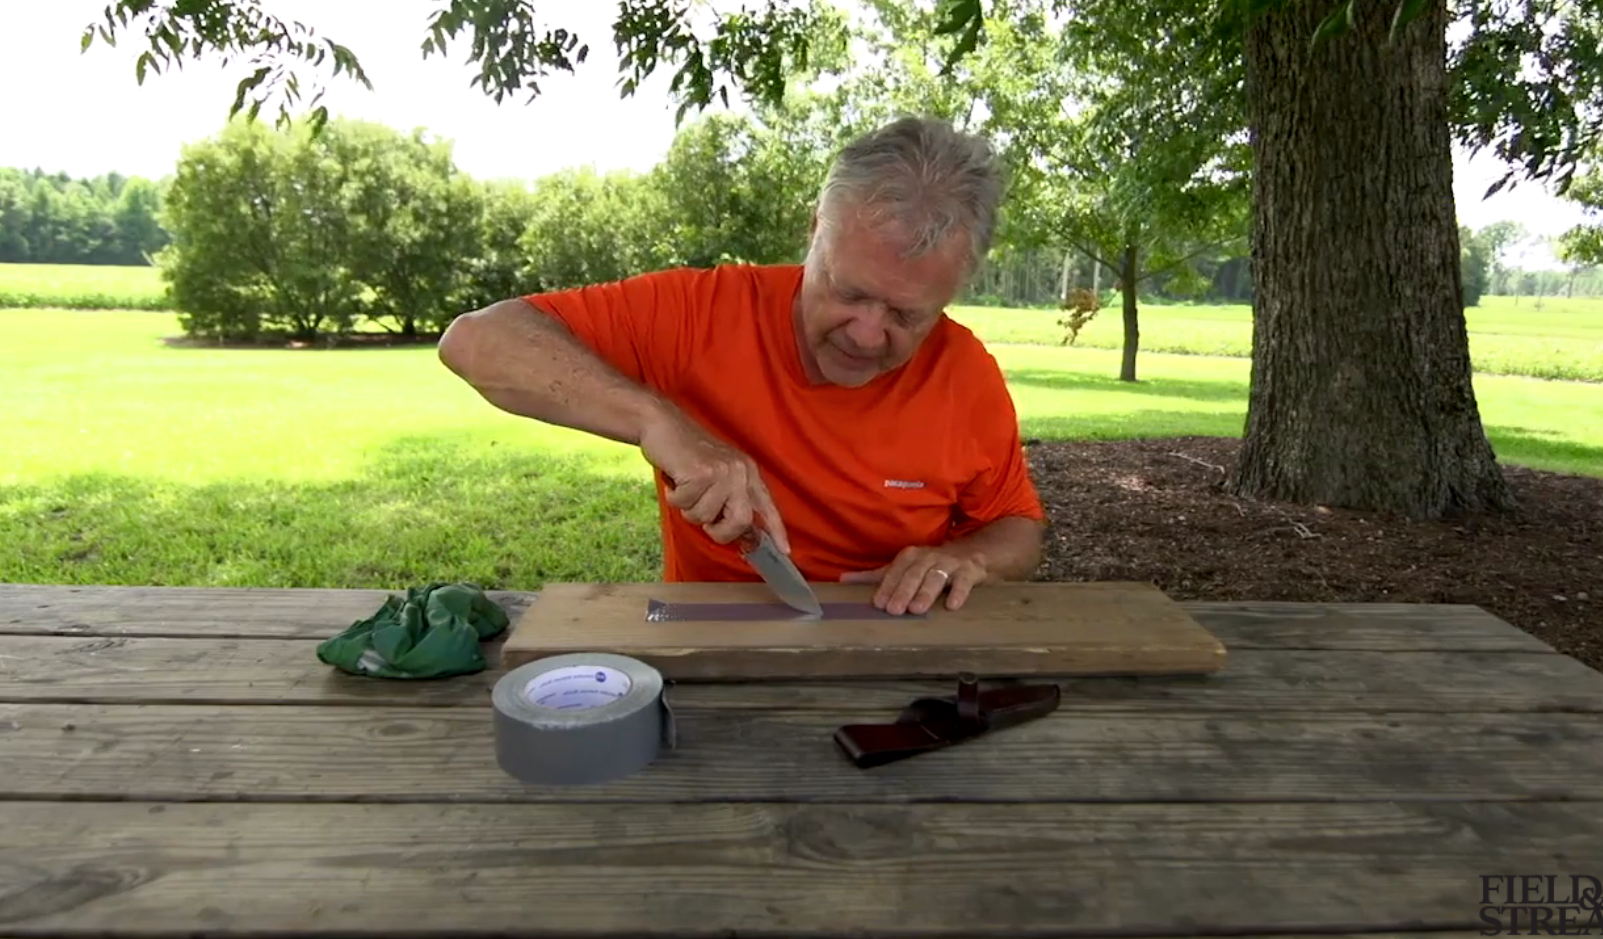 Total Outdoorsman: How to Make a Duct Tape Butterfly Suture